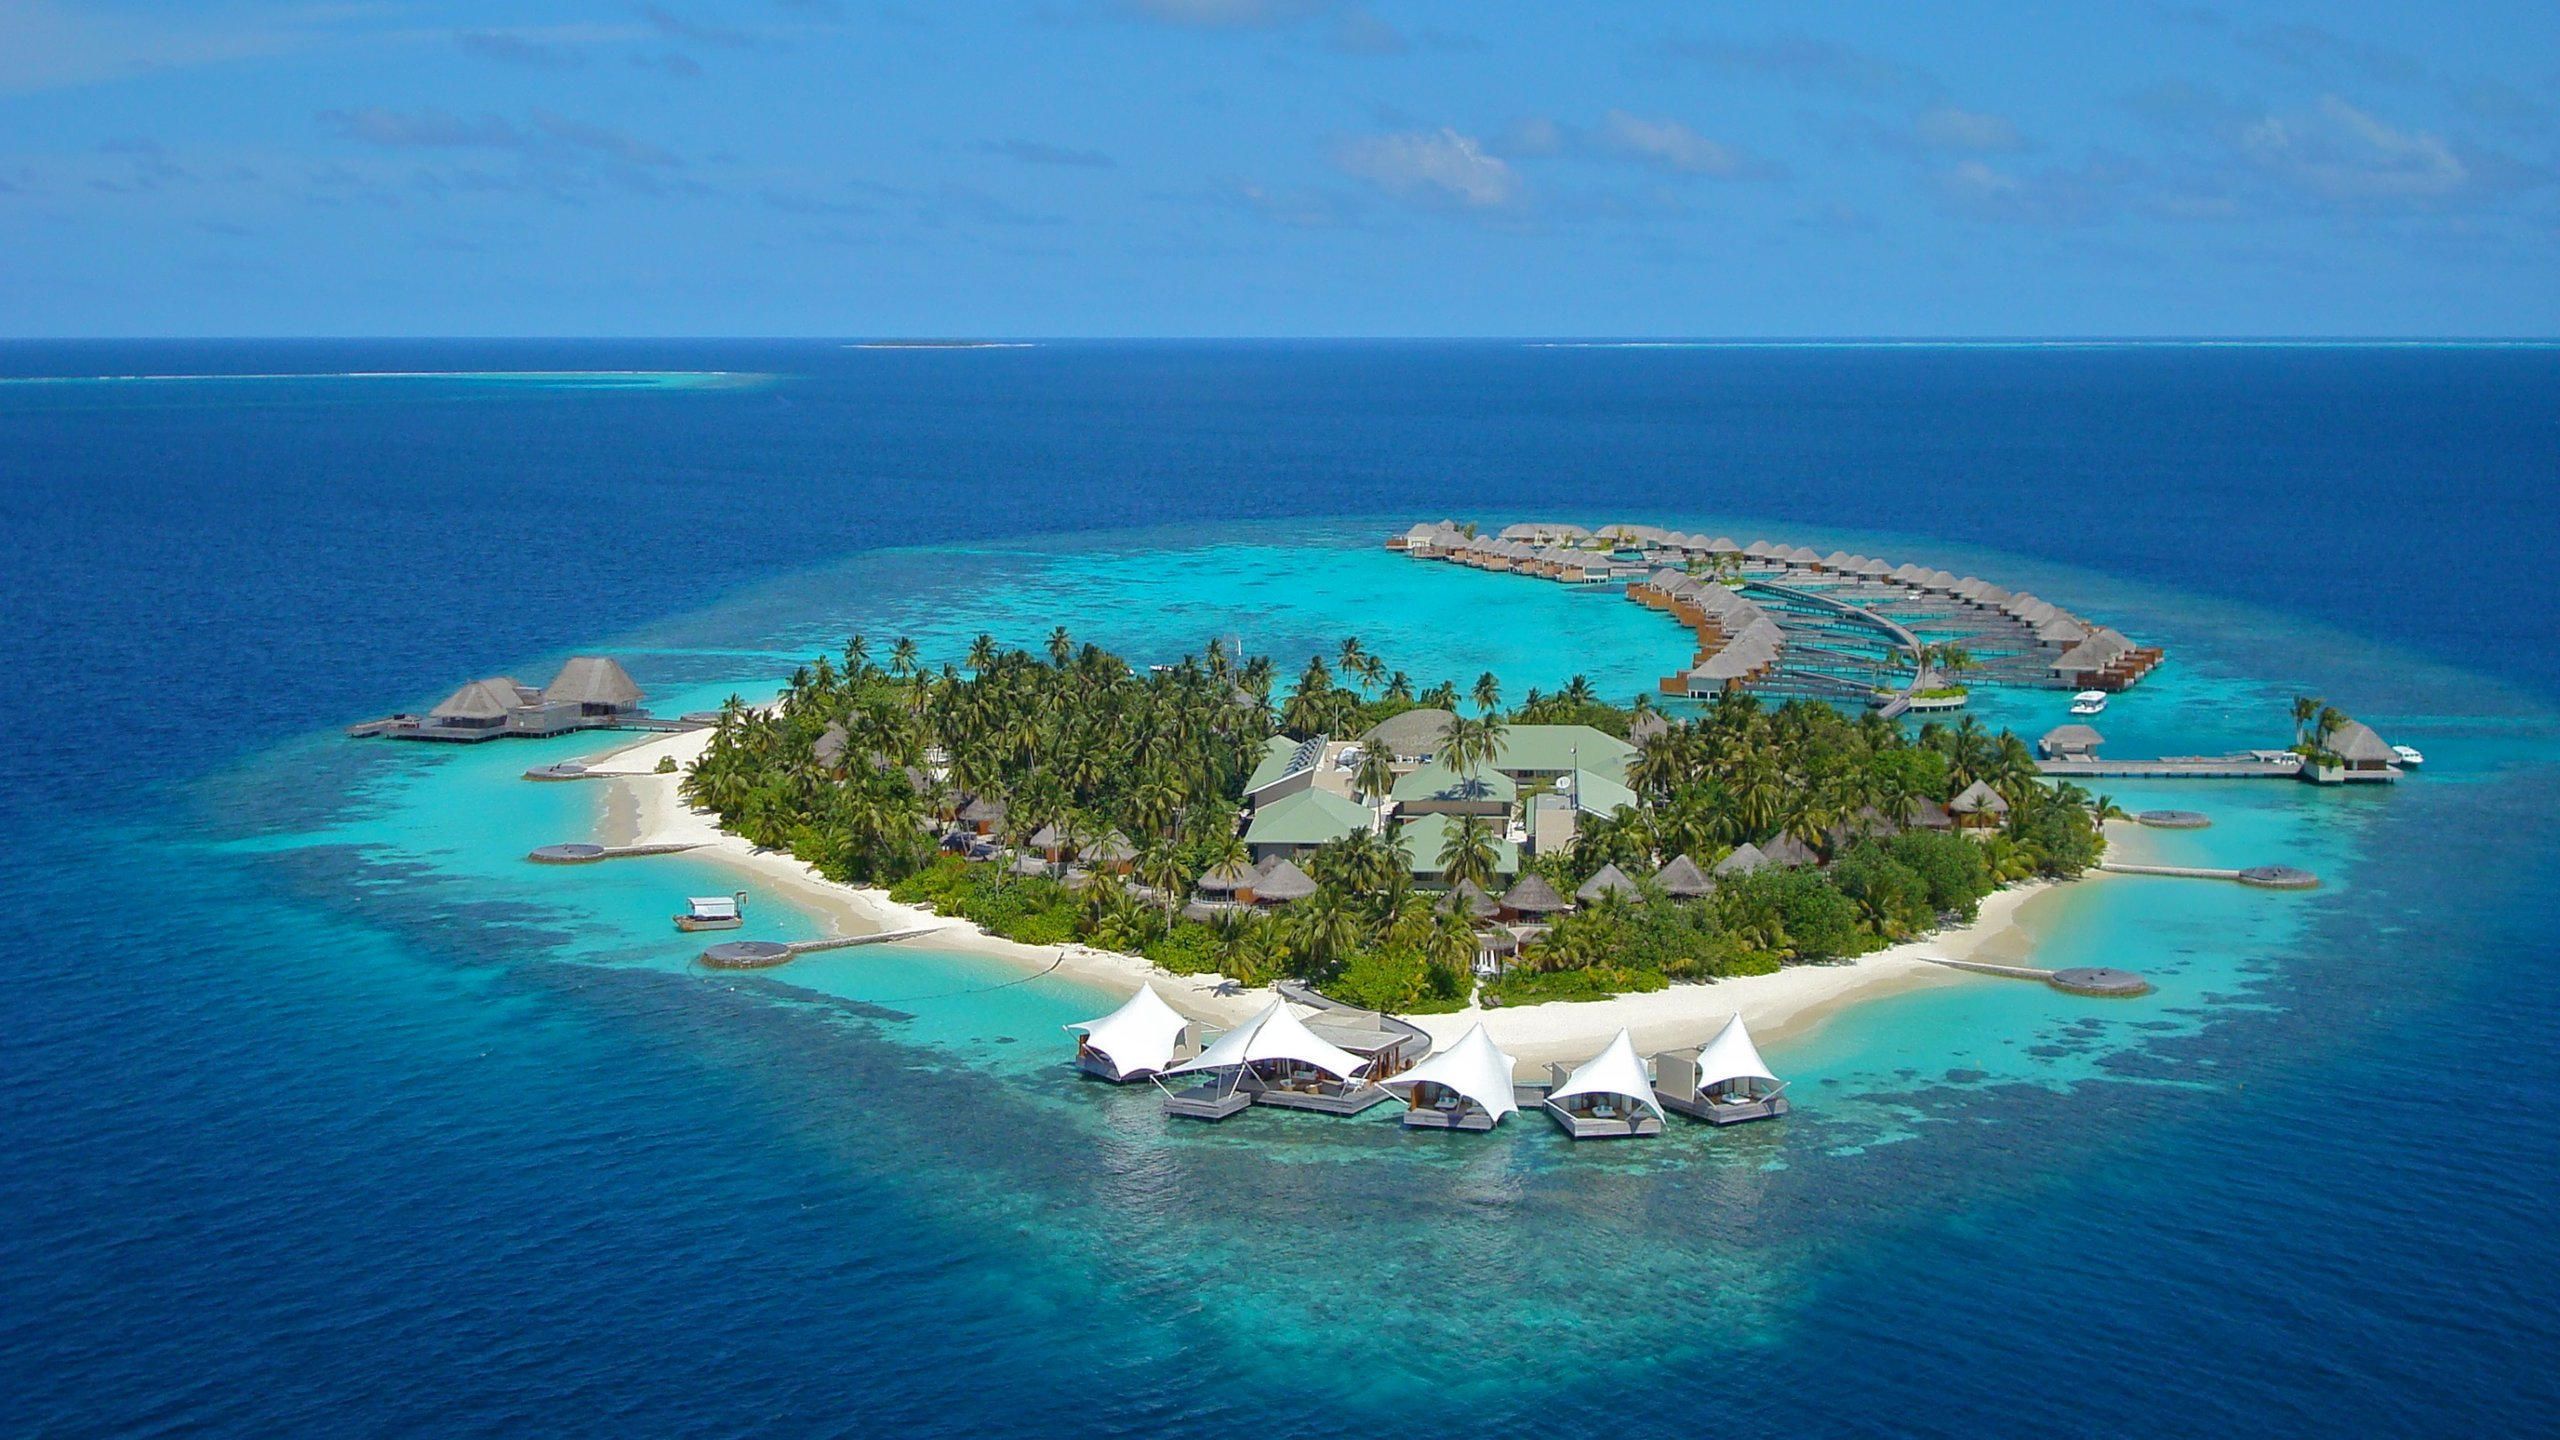 𝗧𝗢𝗣 𝟭𝟬 𝗛𝗼𝘁𝗲𝗹𝘀 𝗶𝗻 Maldives 2020 Expedia India